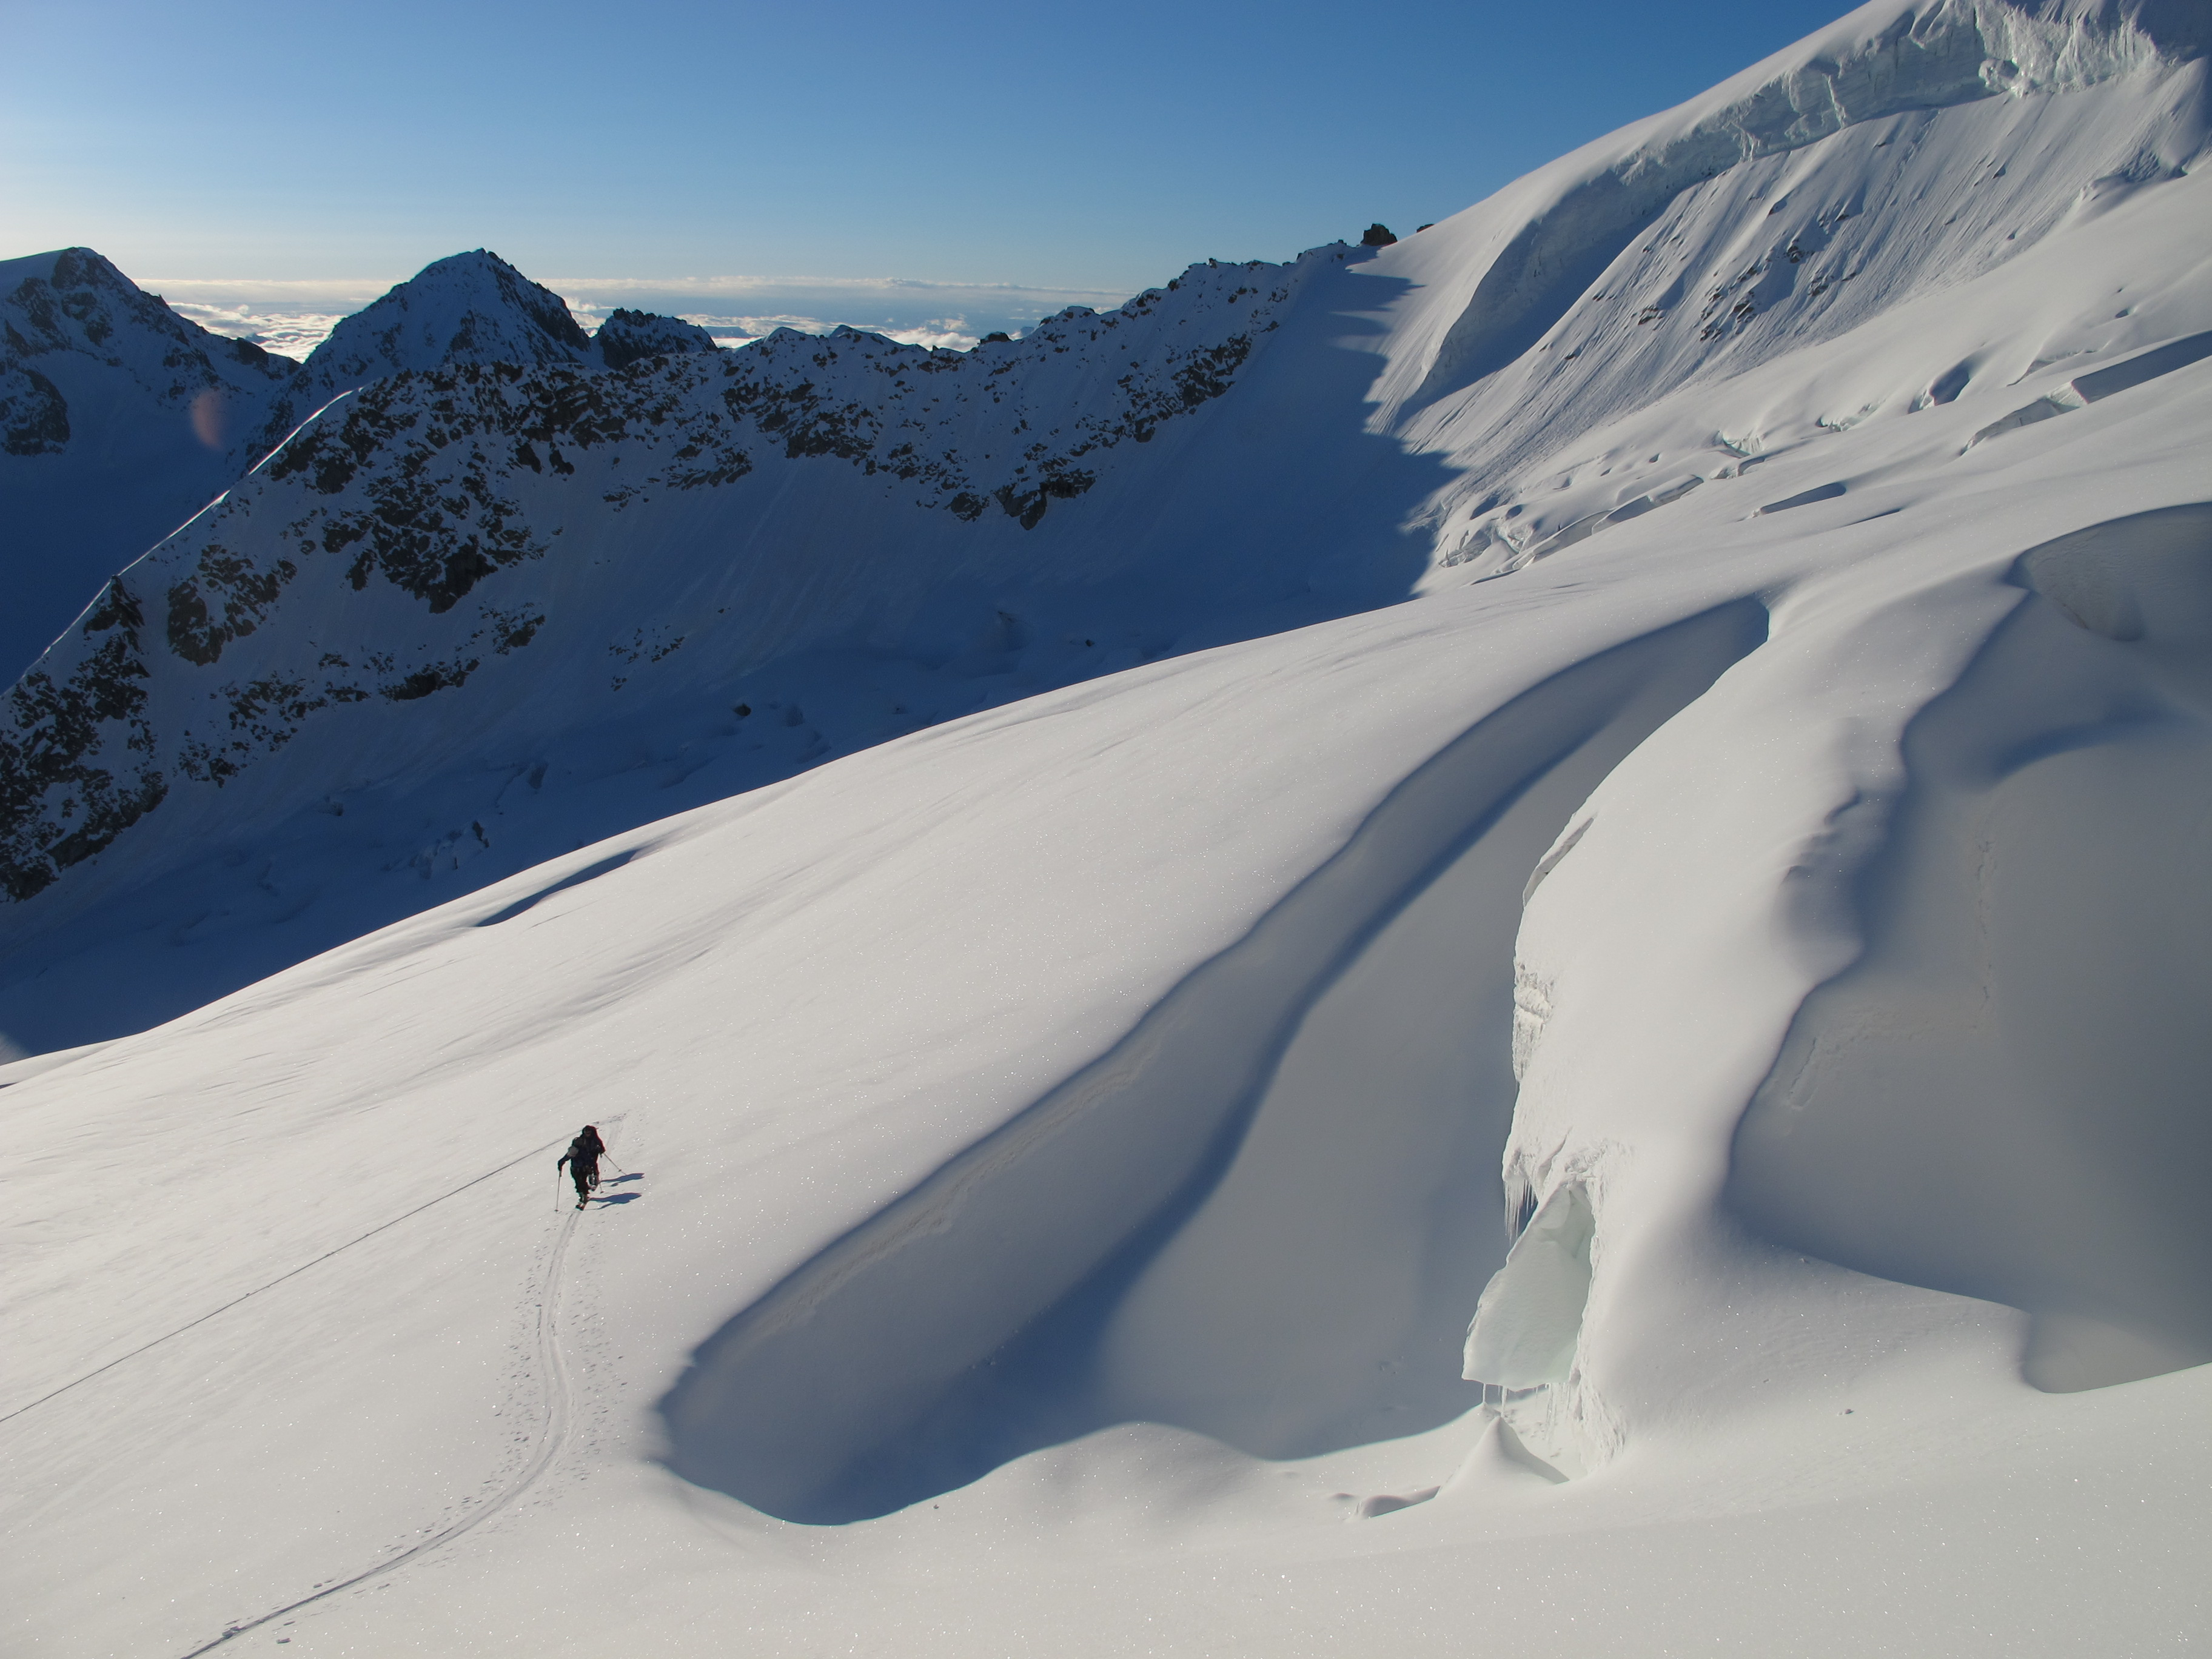 Ski mountaineering in the swiss alps, Photo by Mark Houston.